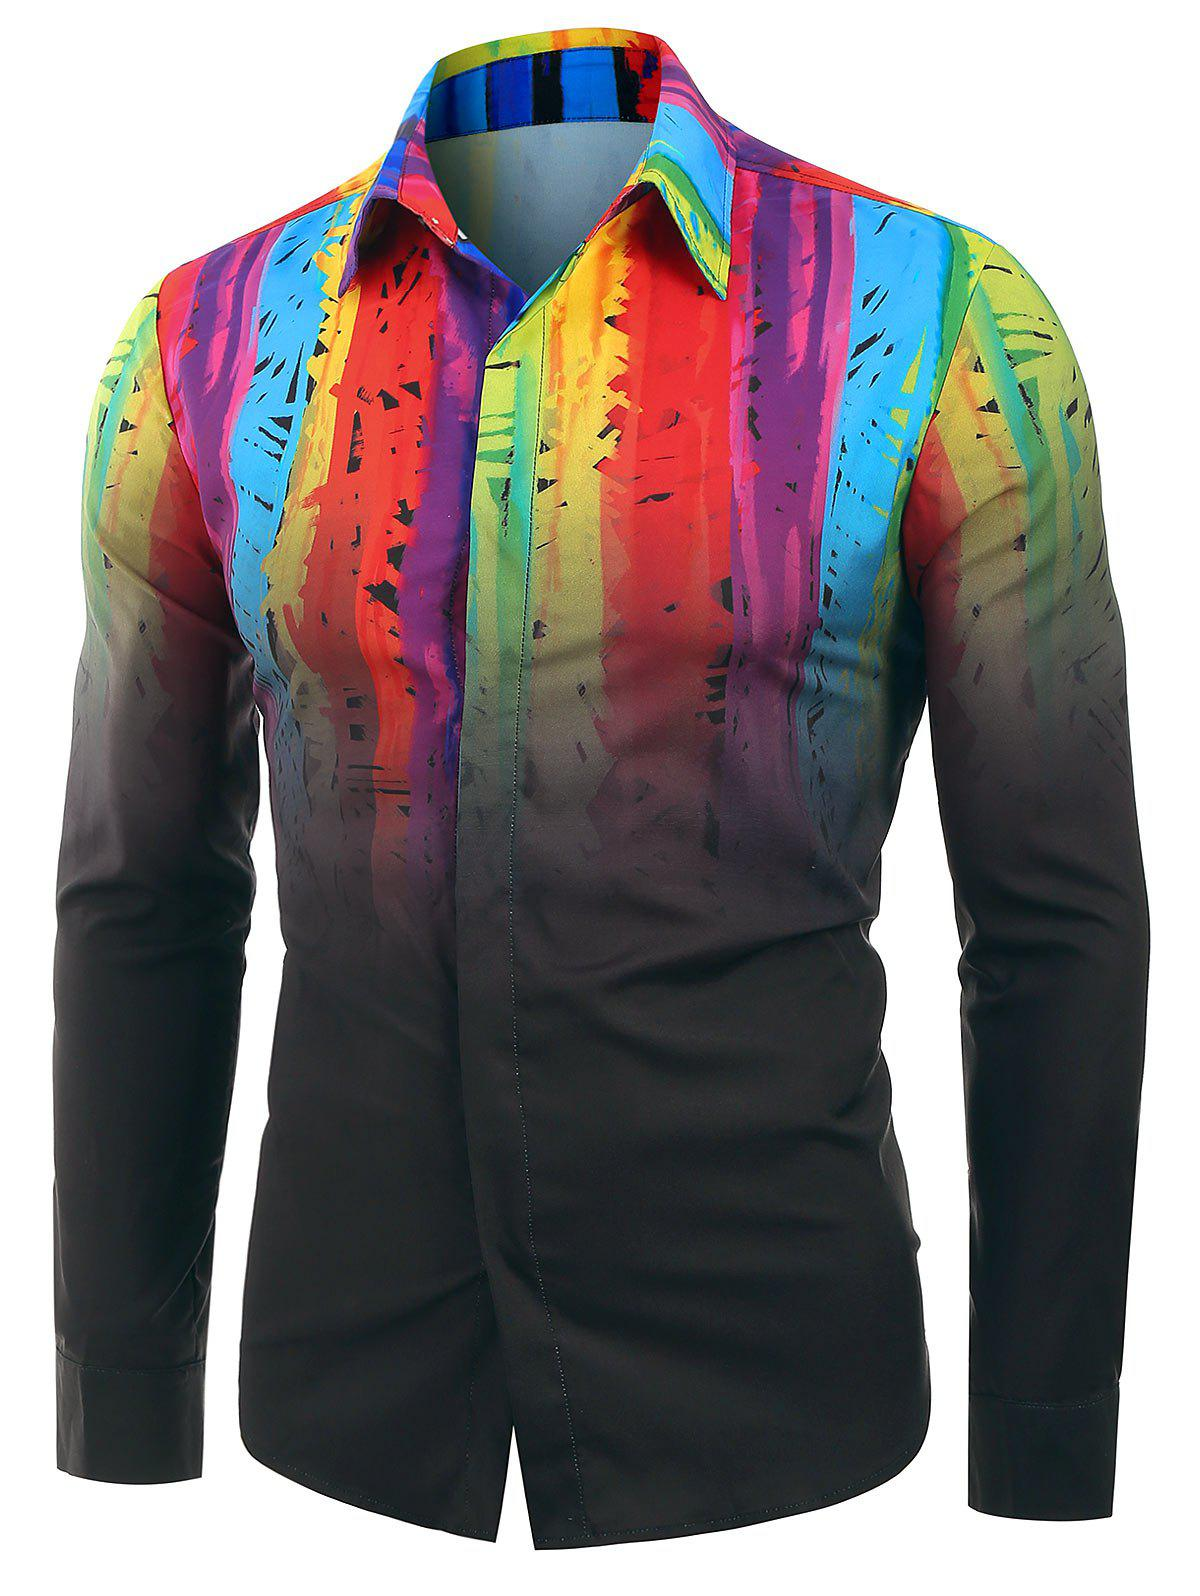 Shop Colorful Ombre Print Long Sleeves Shirt